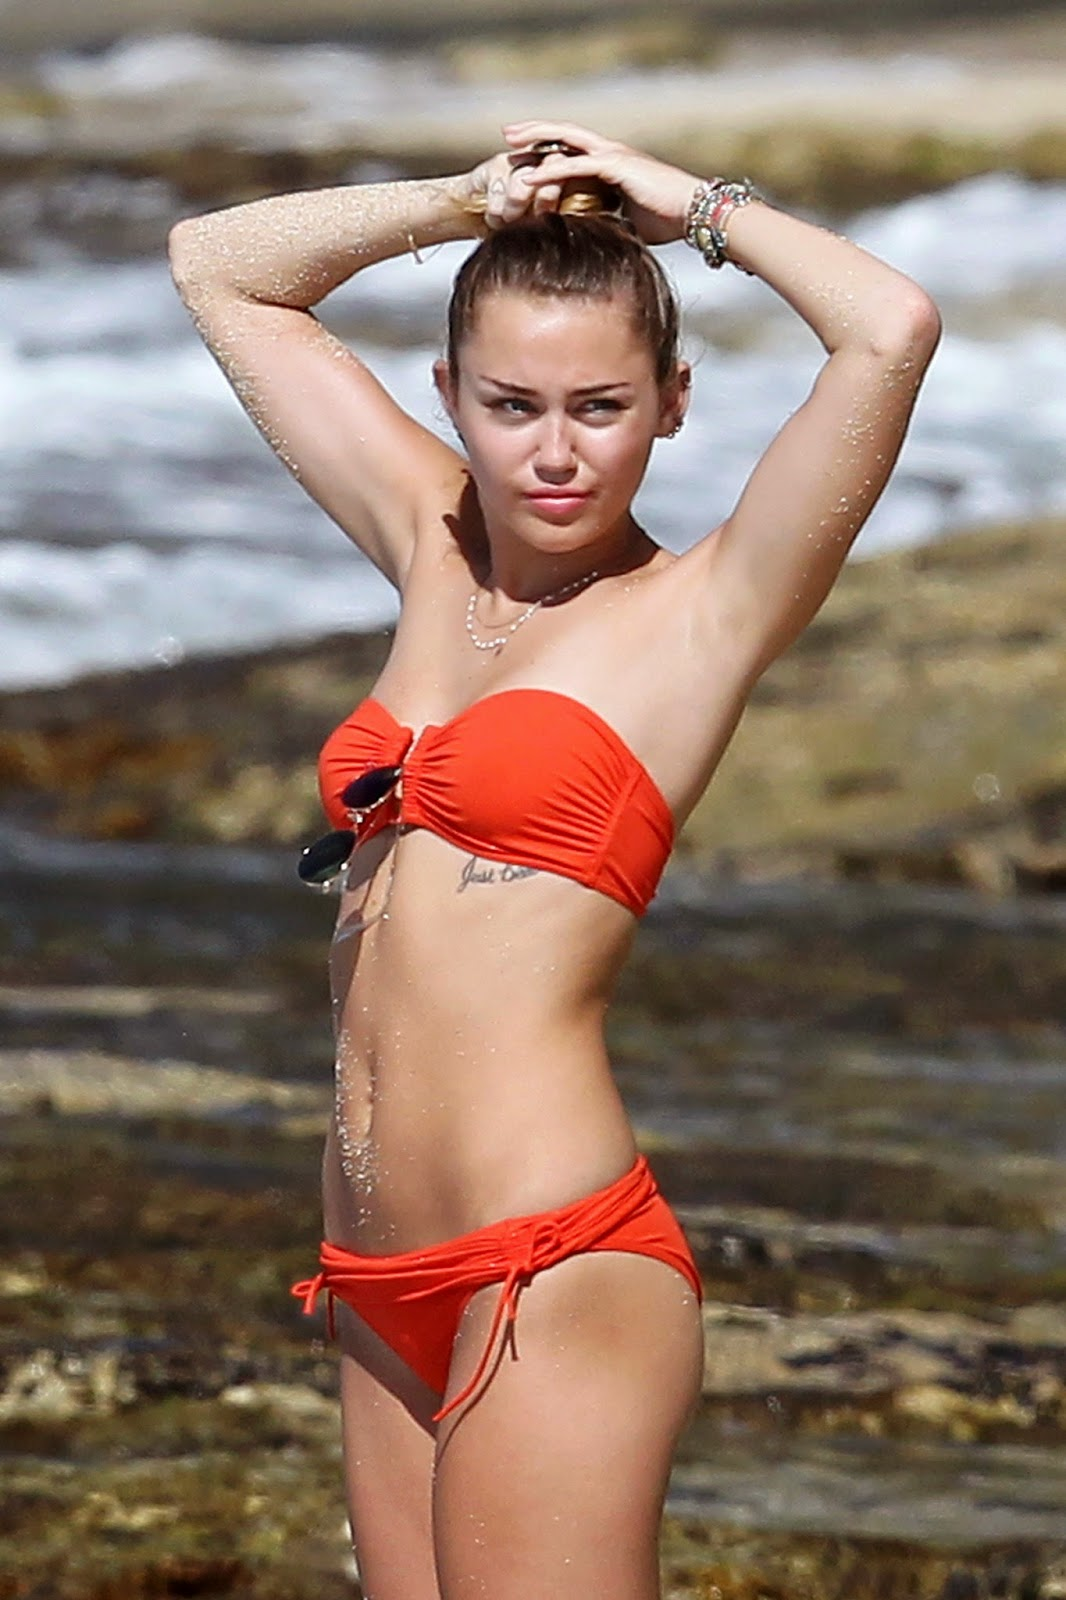 Whitney Cummings topless nude (15 photo), Topless Celebrity fotos